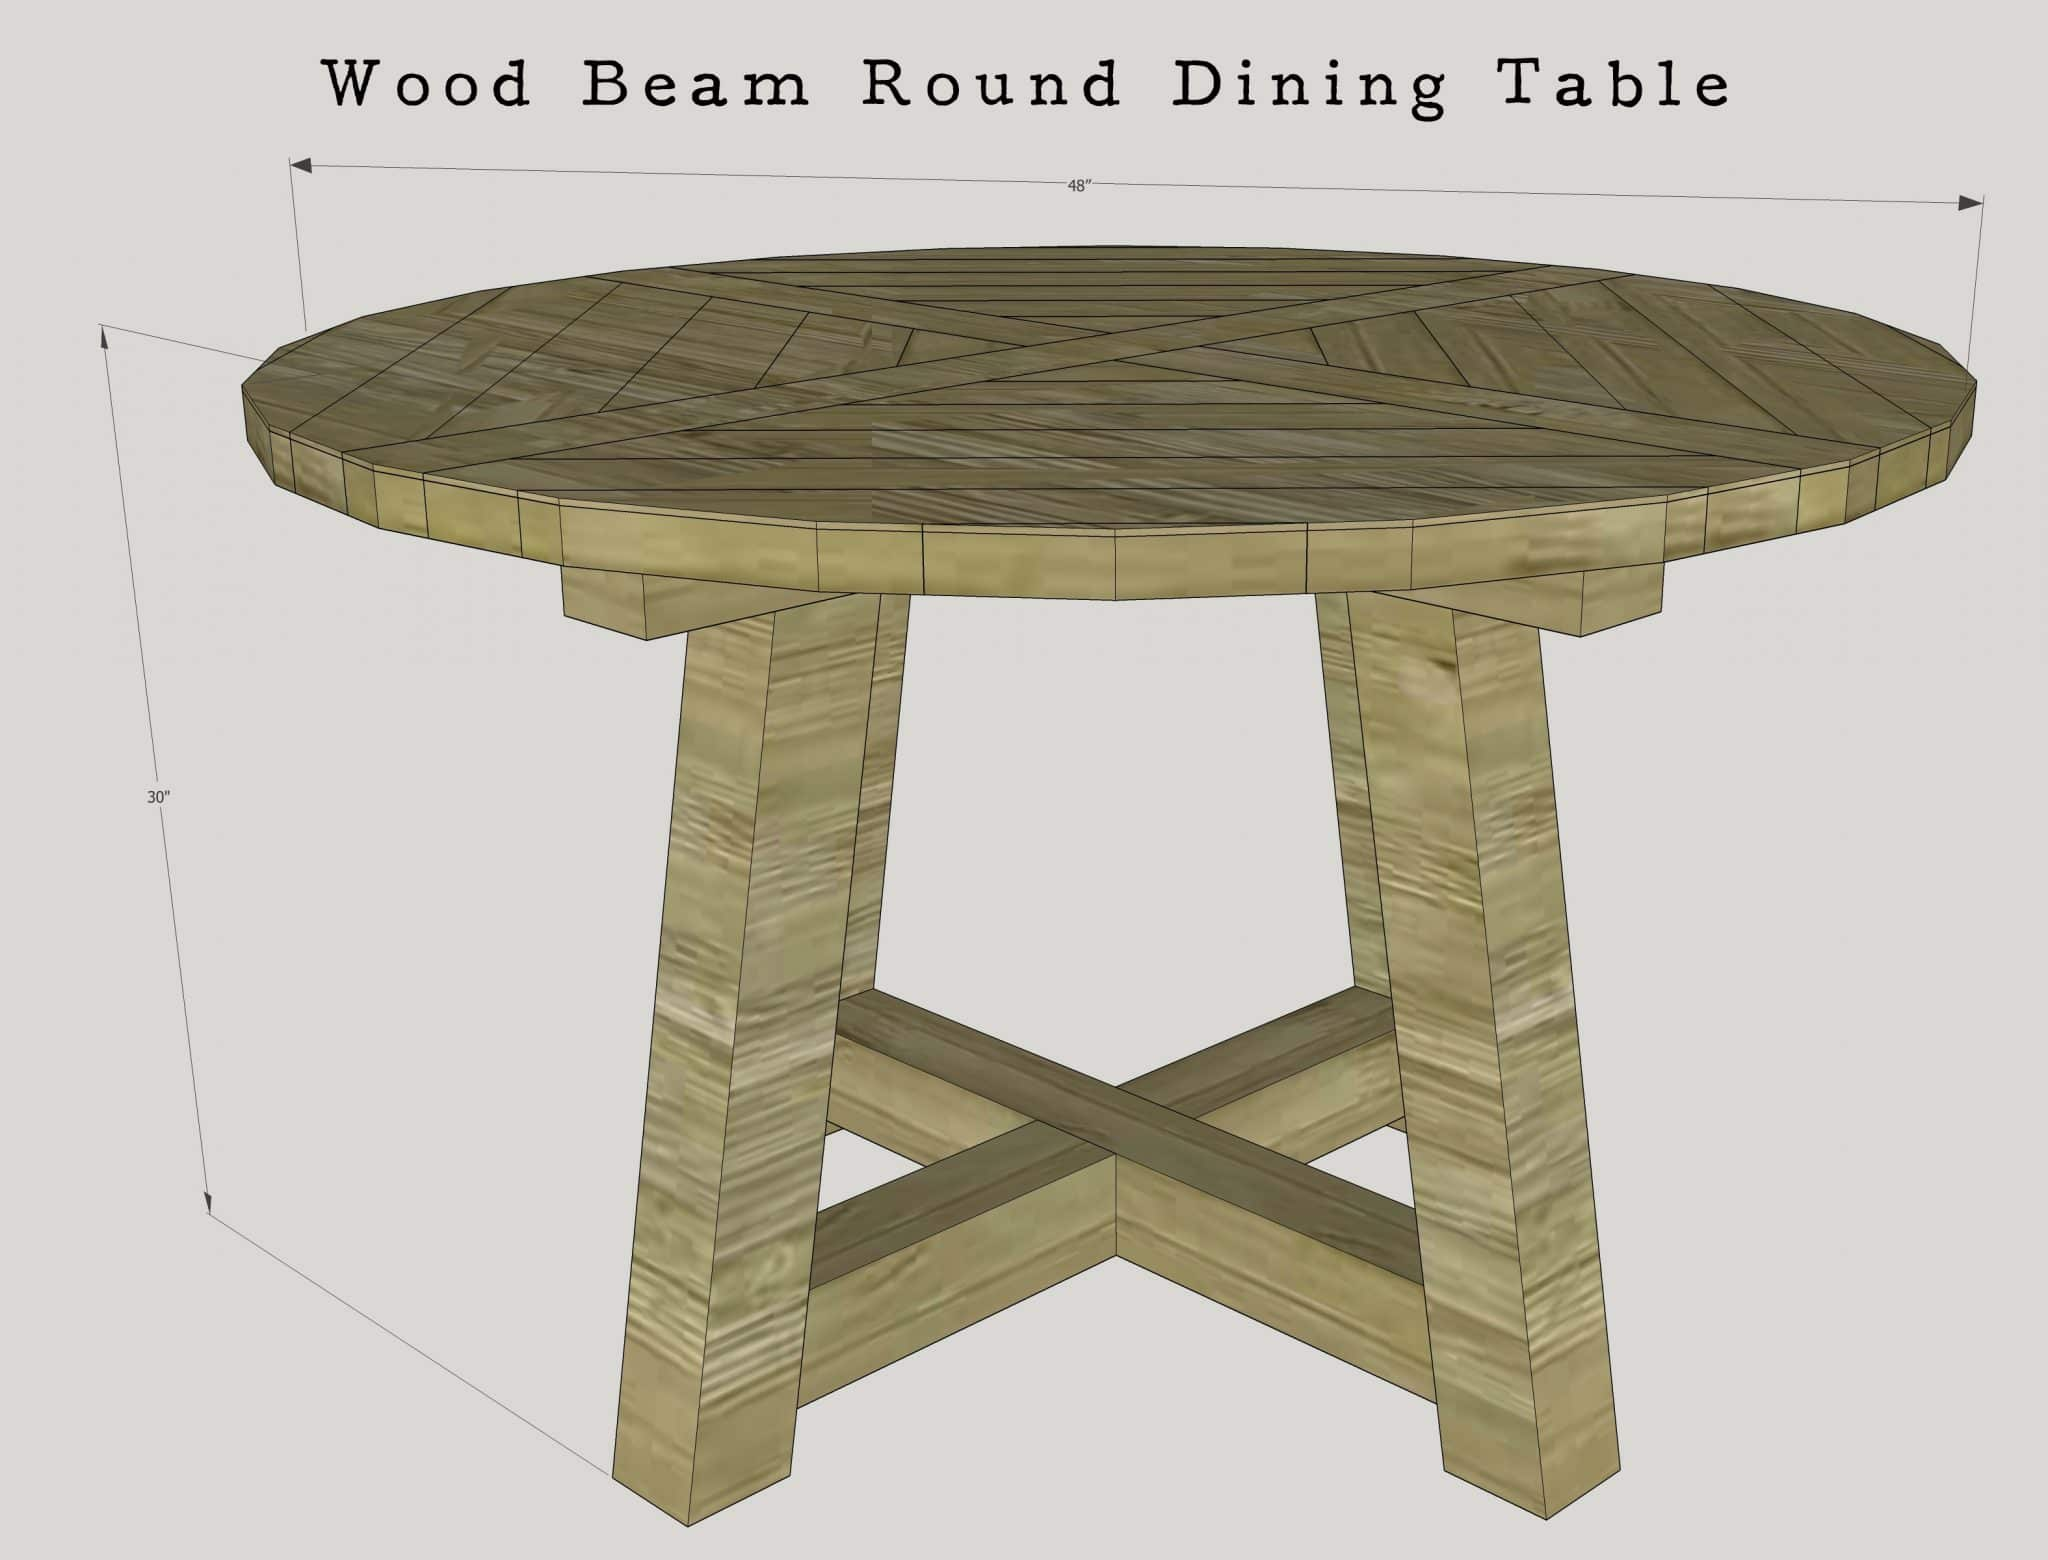 ... 60 Inch Wood Beam Round Dining Table